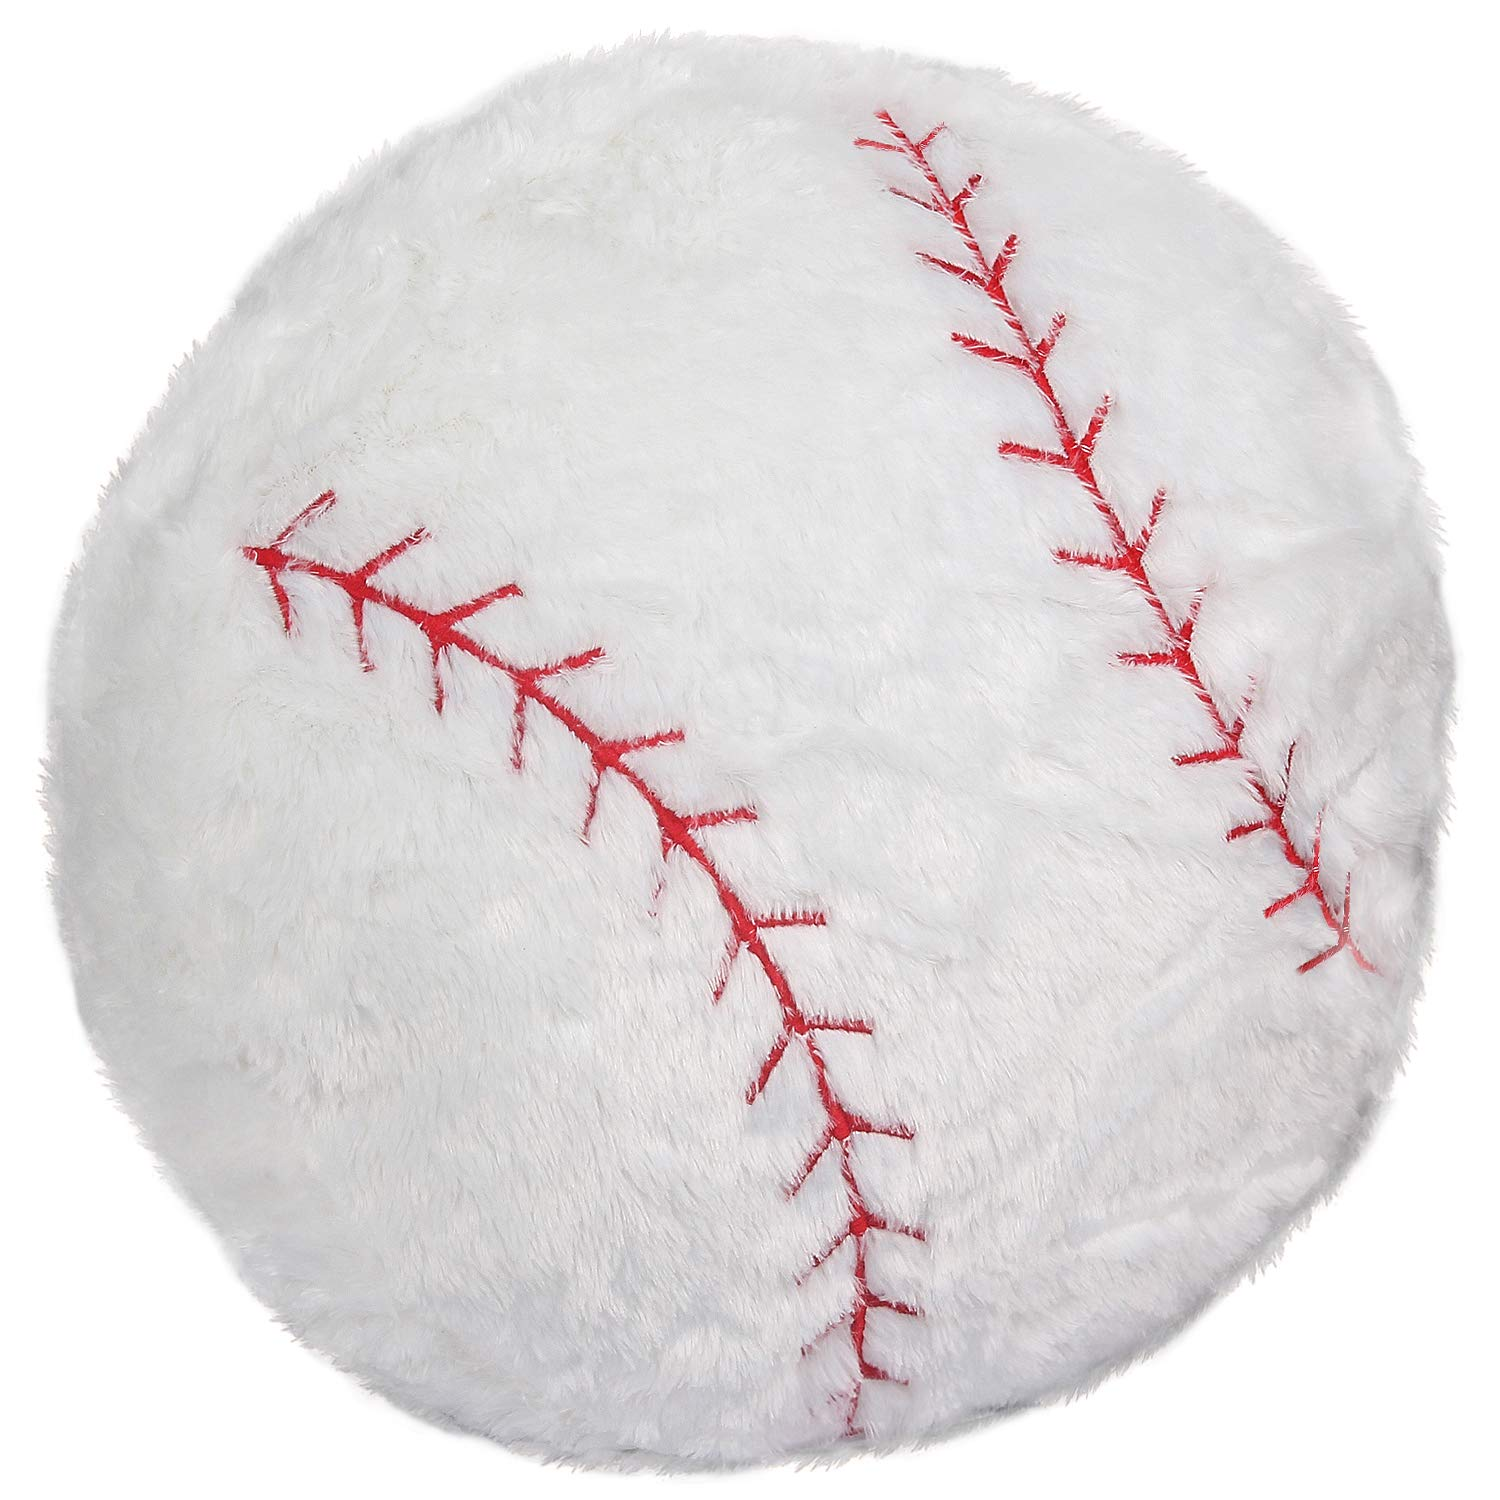 CatchStar Stuffed Baseball Pillow Plush Fluffy Sports Ball Throw Pillow Soft Durable Sports Toy Gift for Kids Room Decoration Winter Style